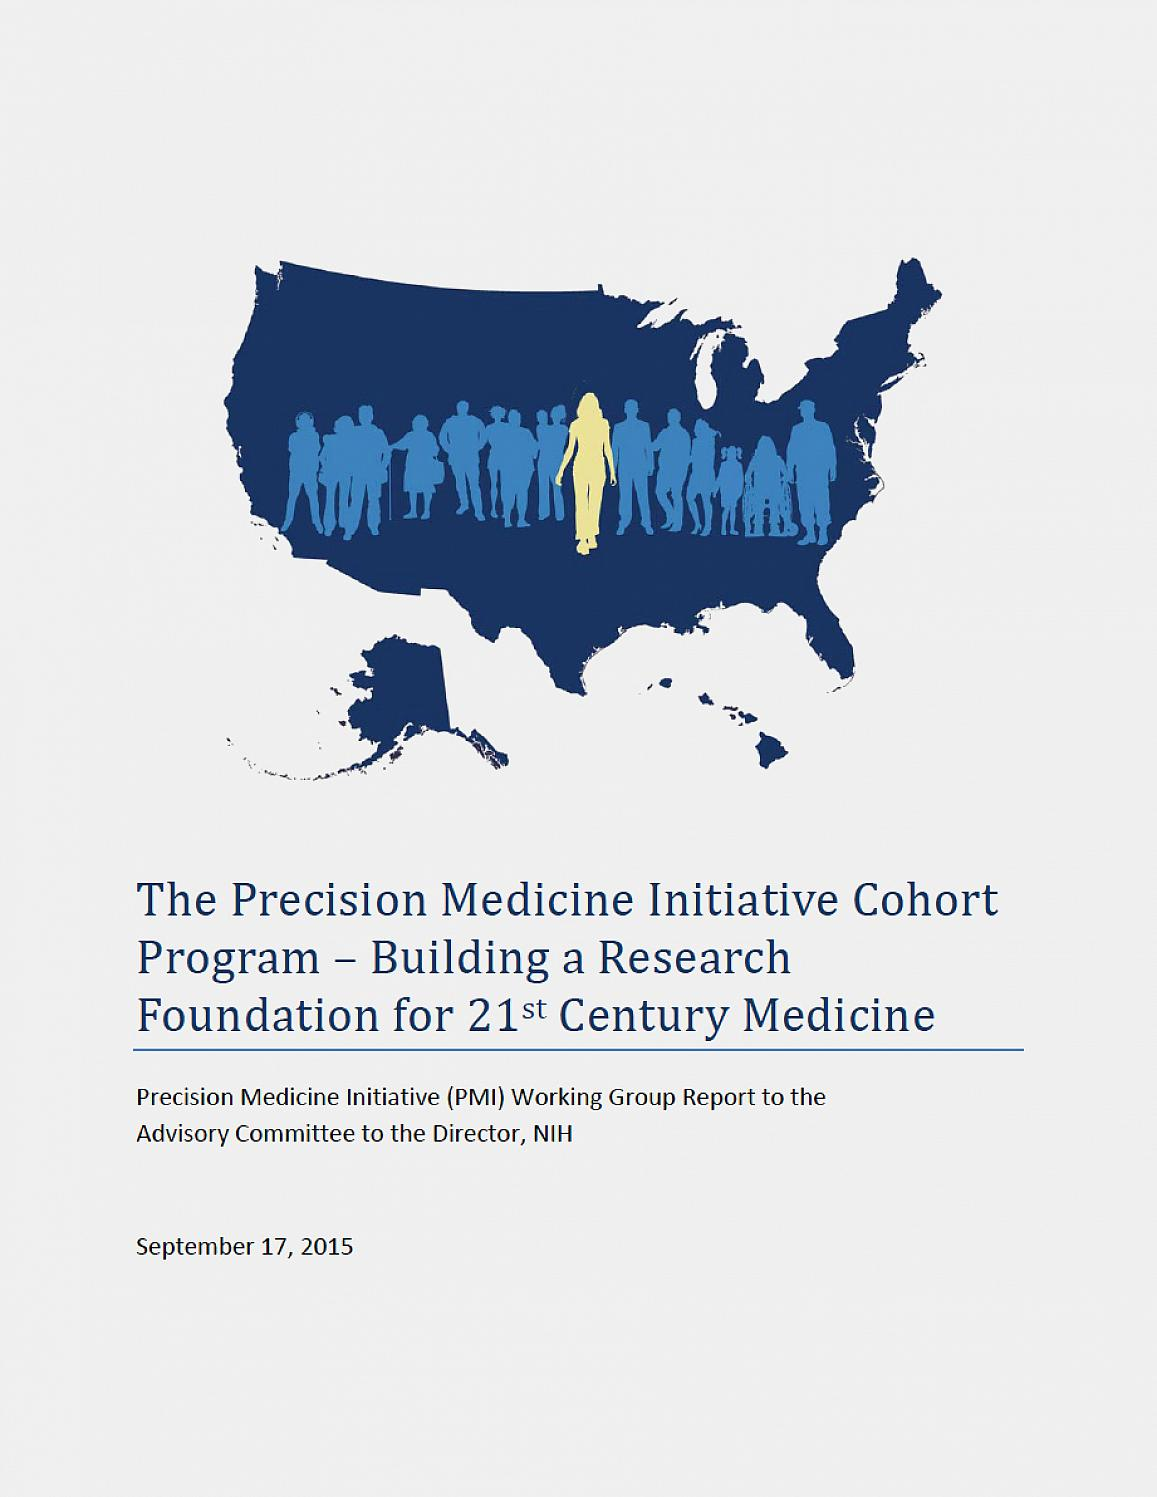 NIH framework points the way forward for building national, large-scale research cohort, a key component of the President's Precision Medicine Initiative